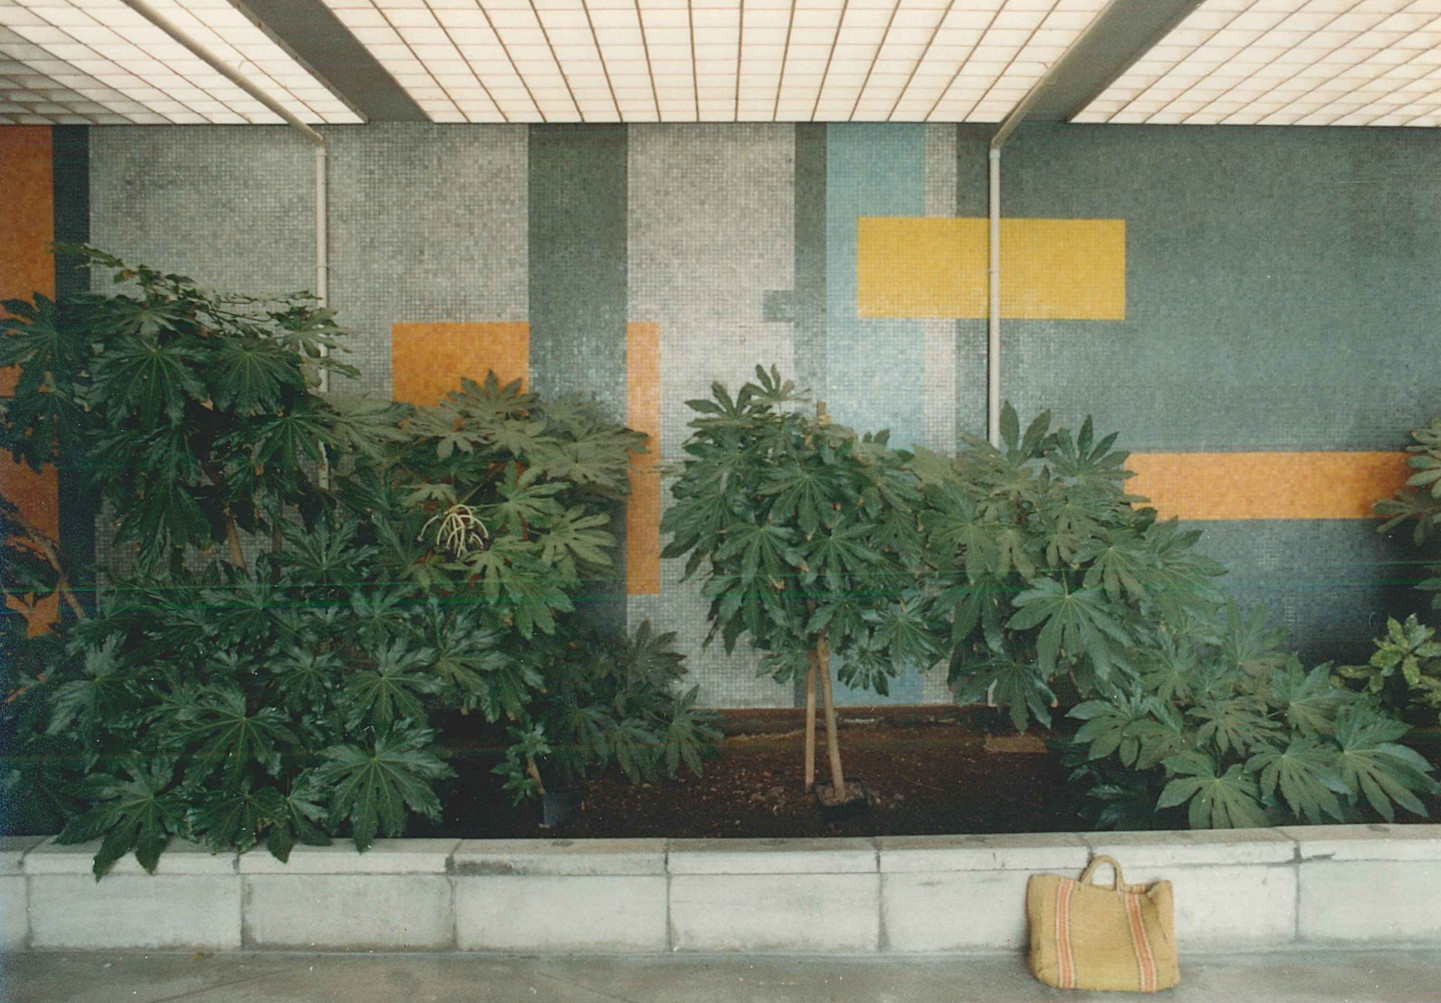 A geometric mosaic tile mural featuring bands and rectangles in greys, with orange and yellow accents, 1987